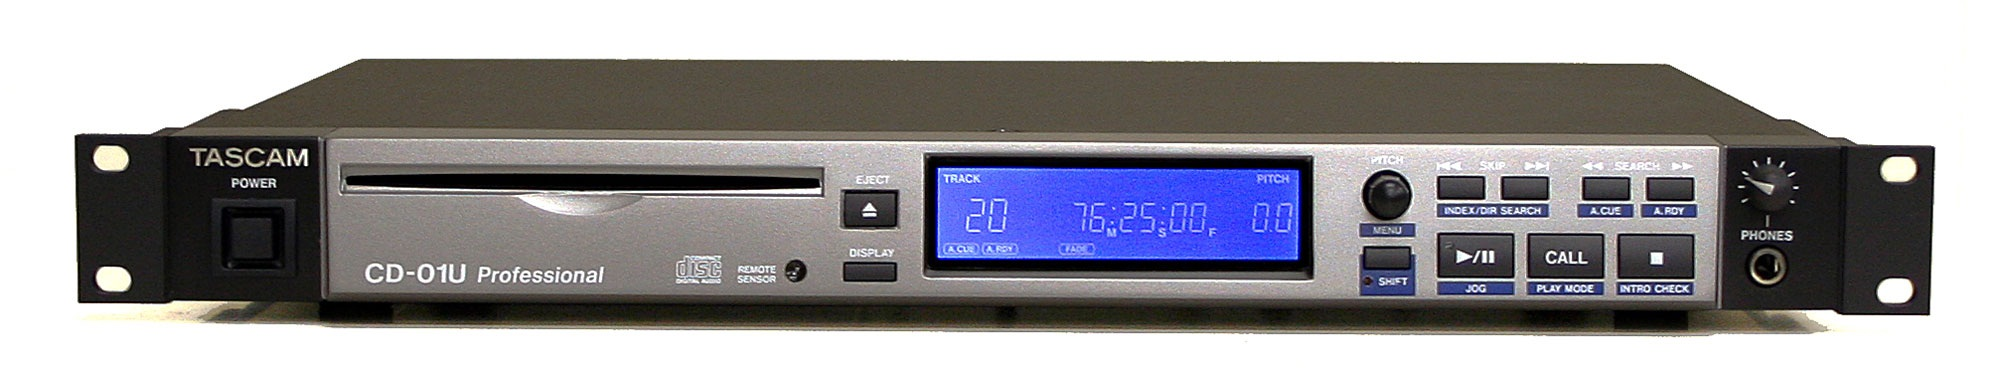 TASCAM CD-01U Pro Compact Disc Player Balance.AES/EBU.Optical Out